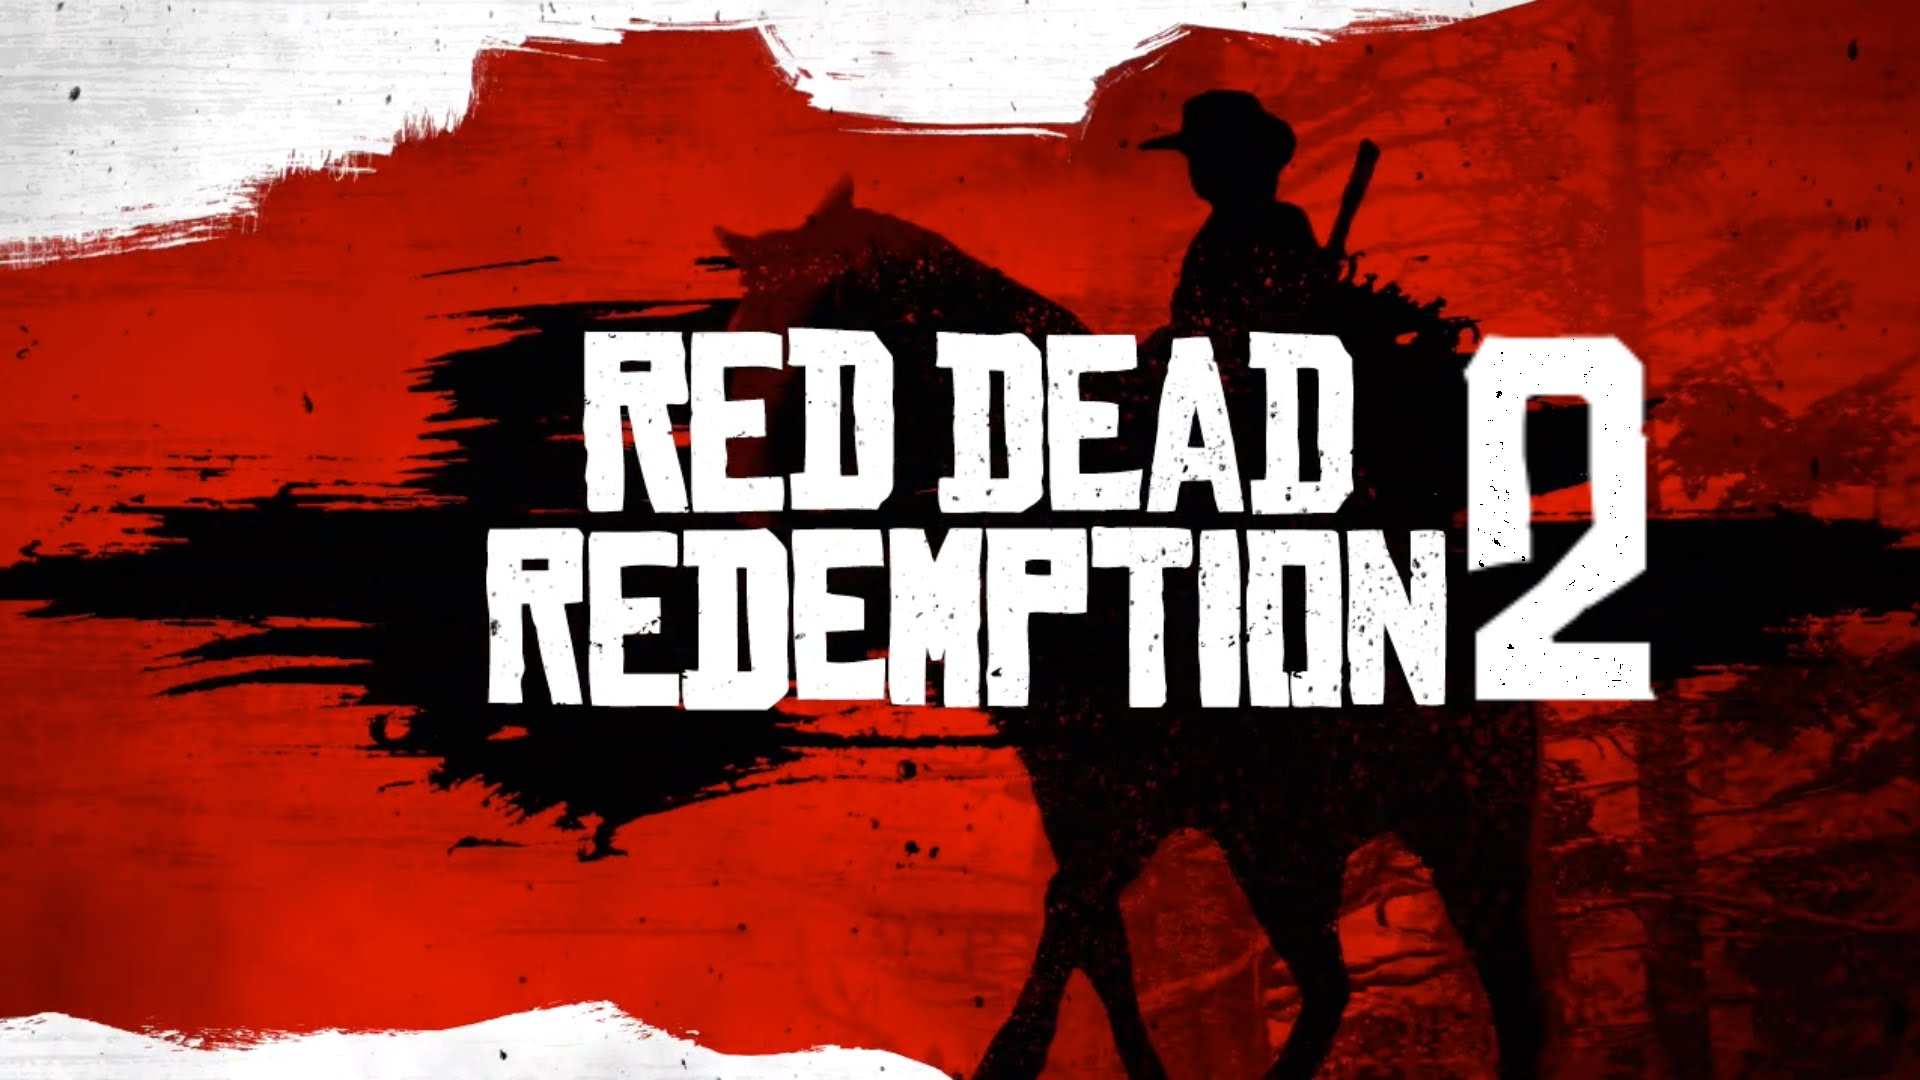 Red Dead Redemption 2, horse, riding, poster